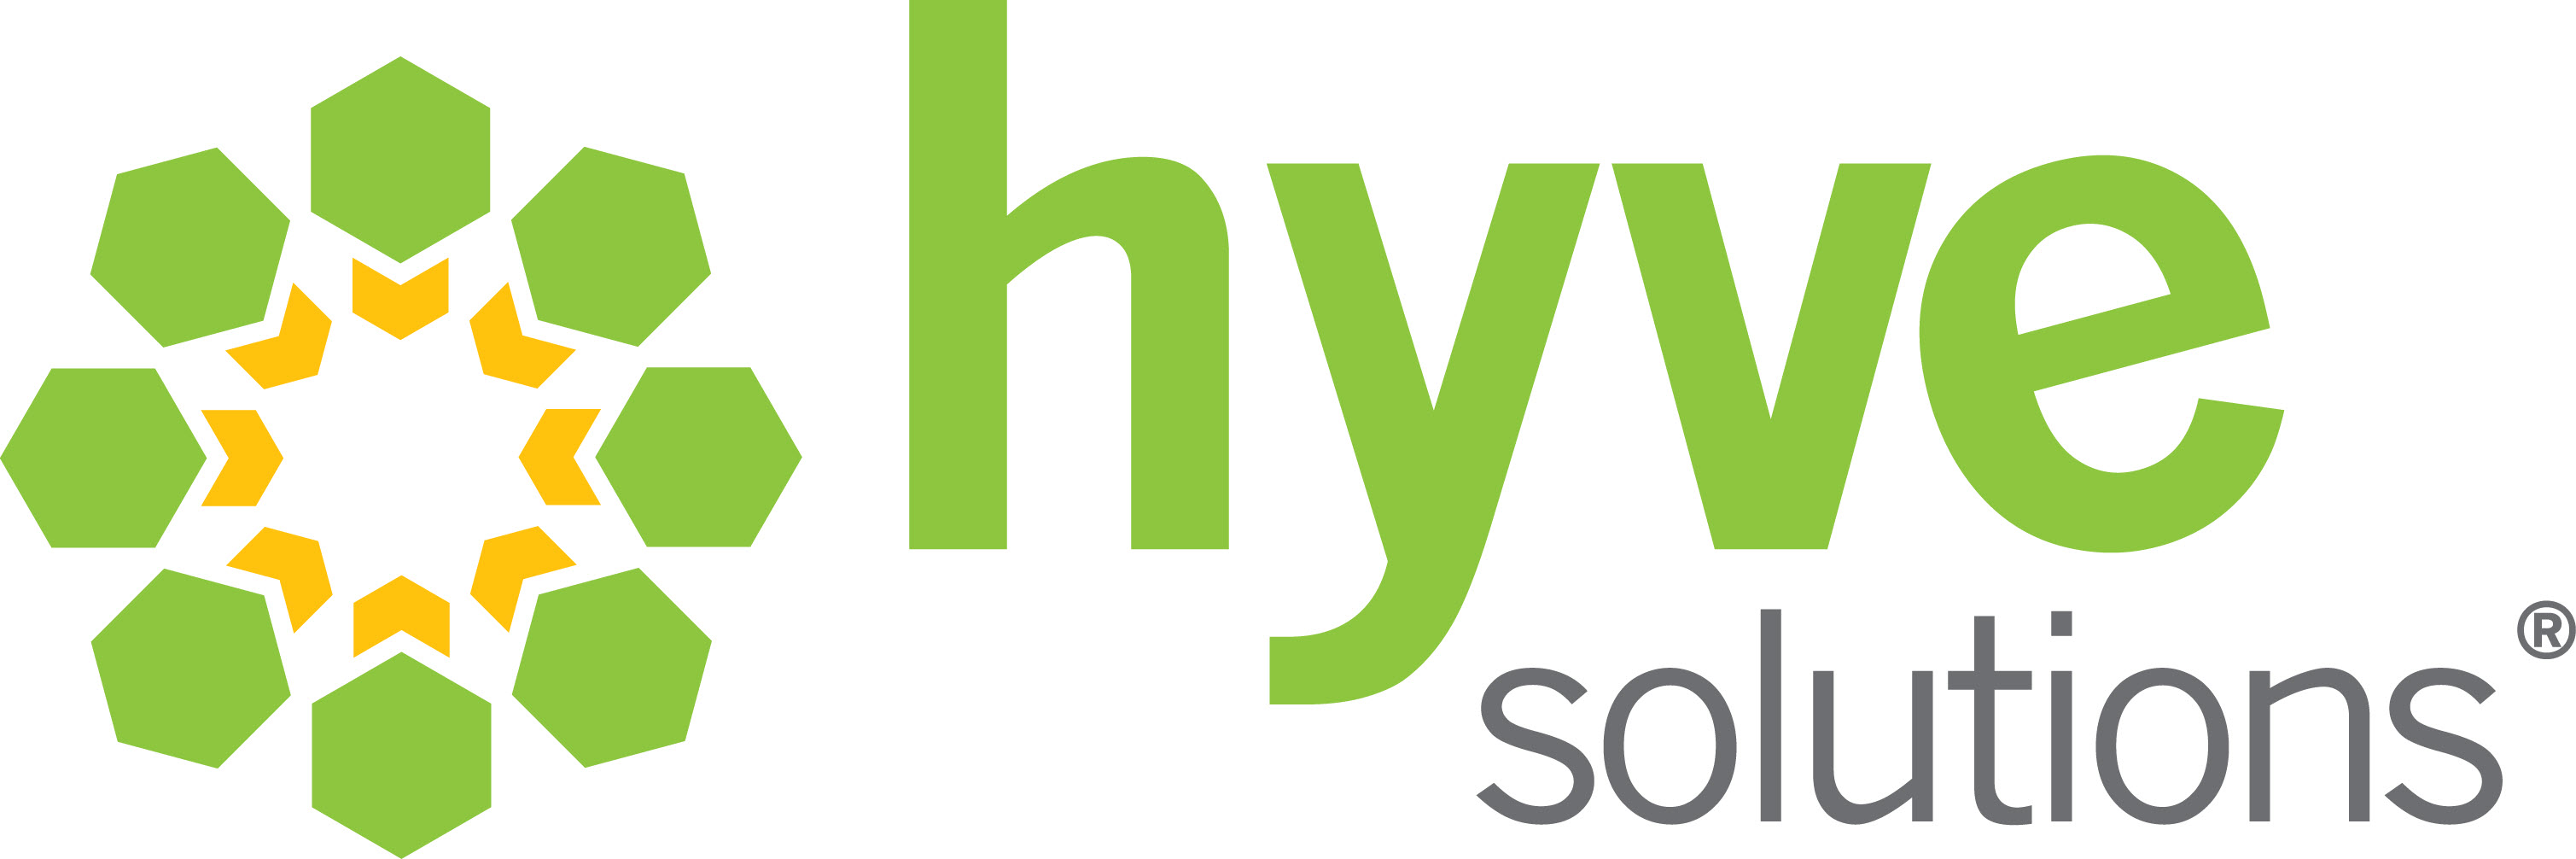 Hyve Solutions logo